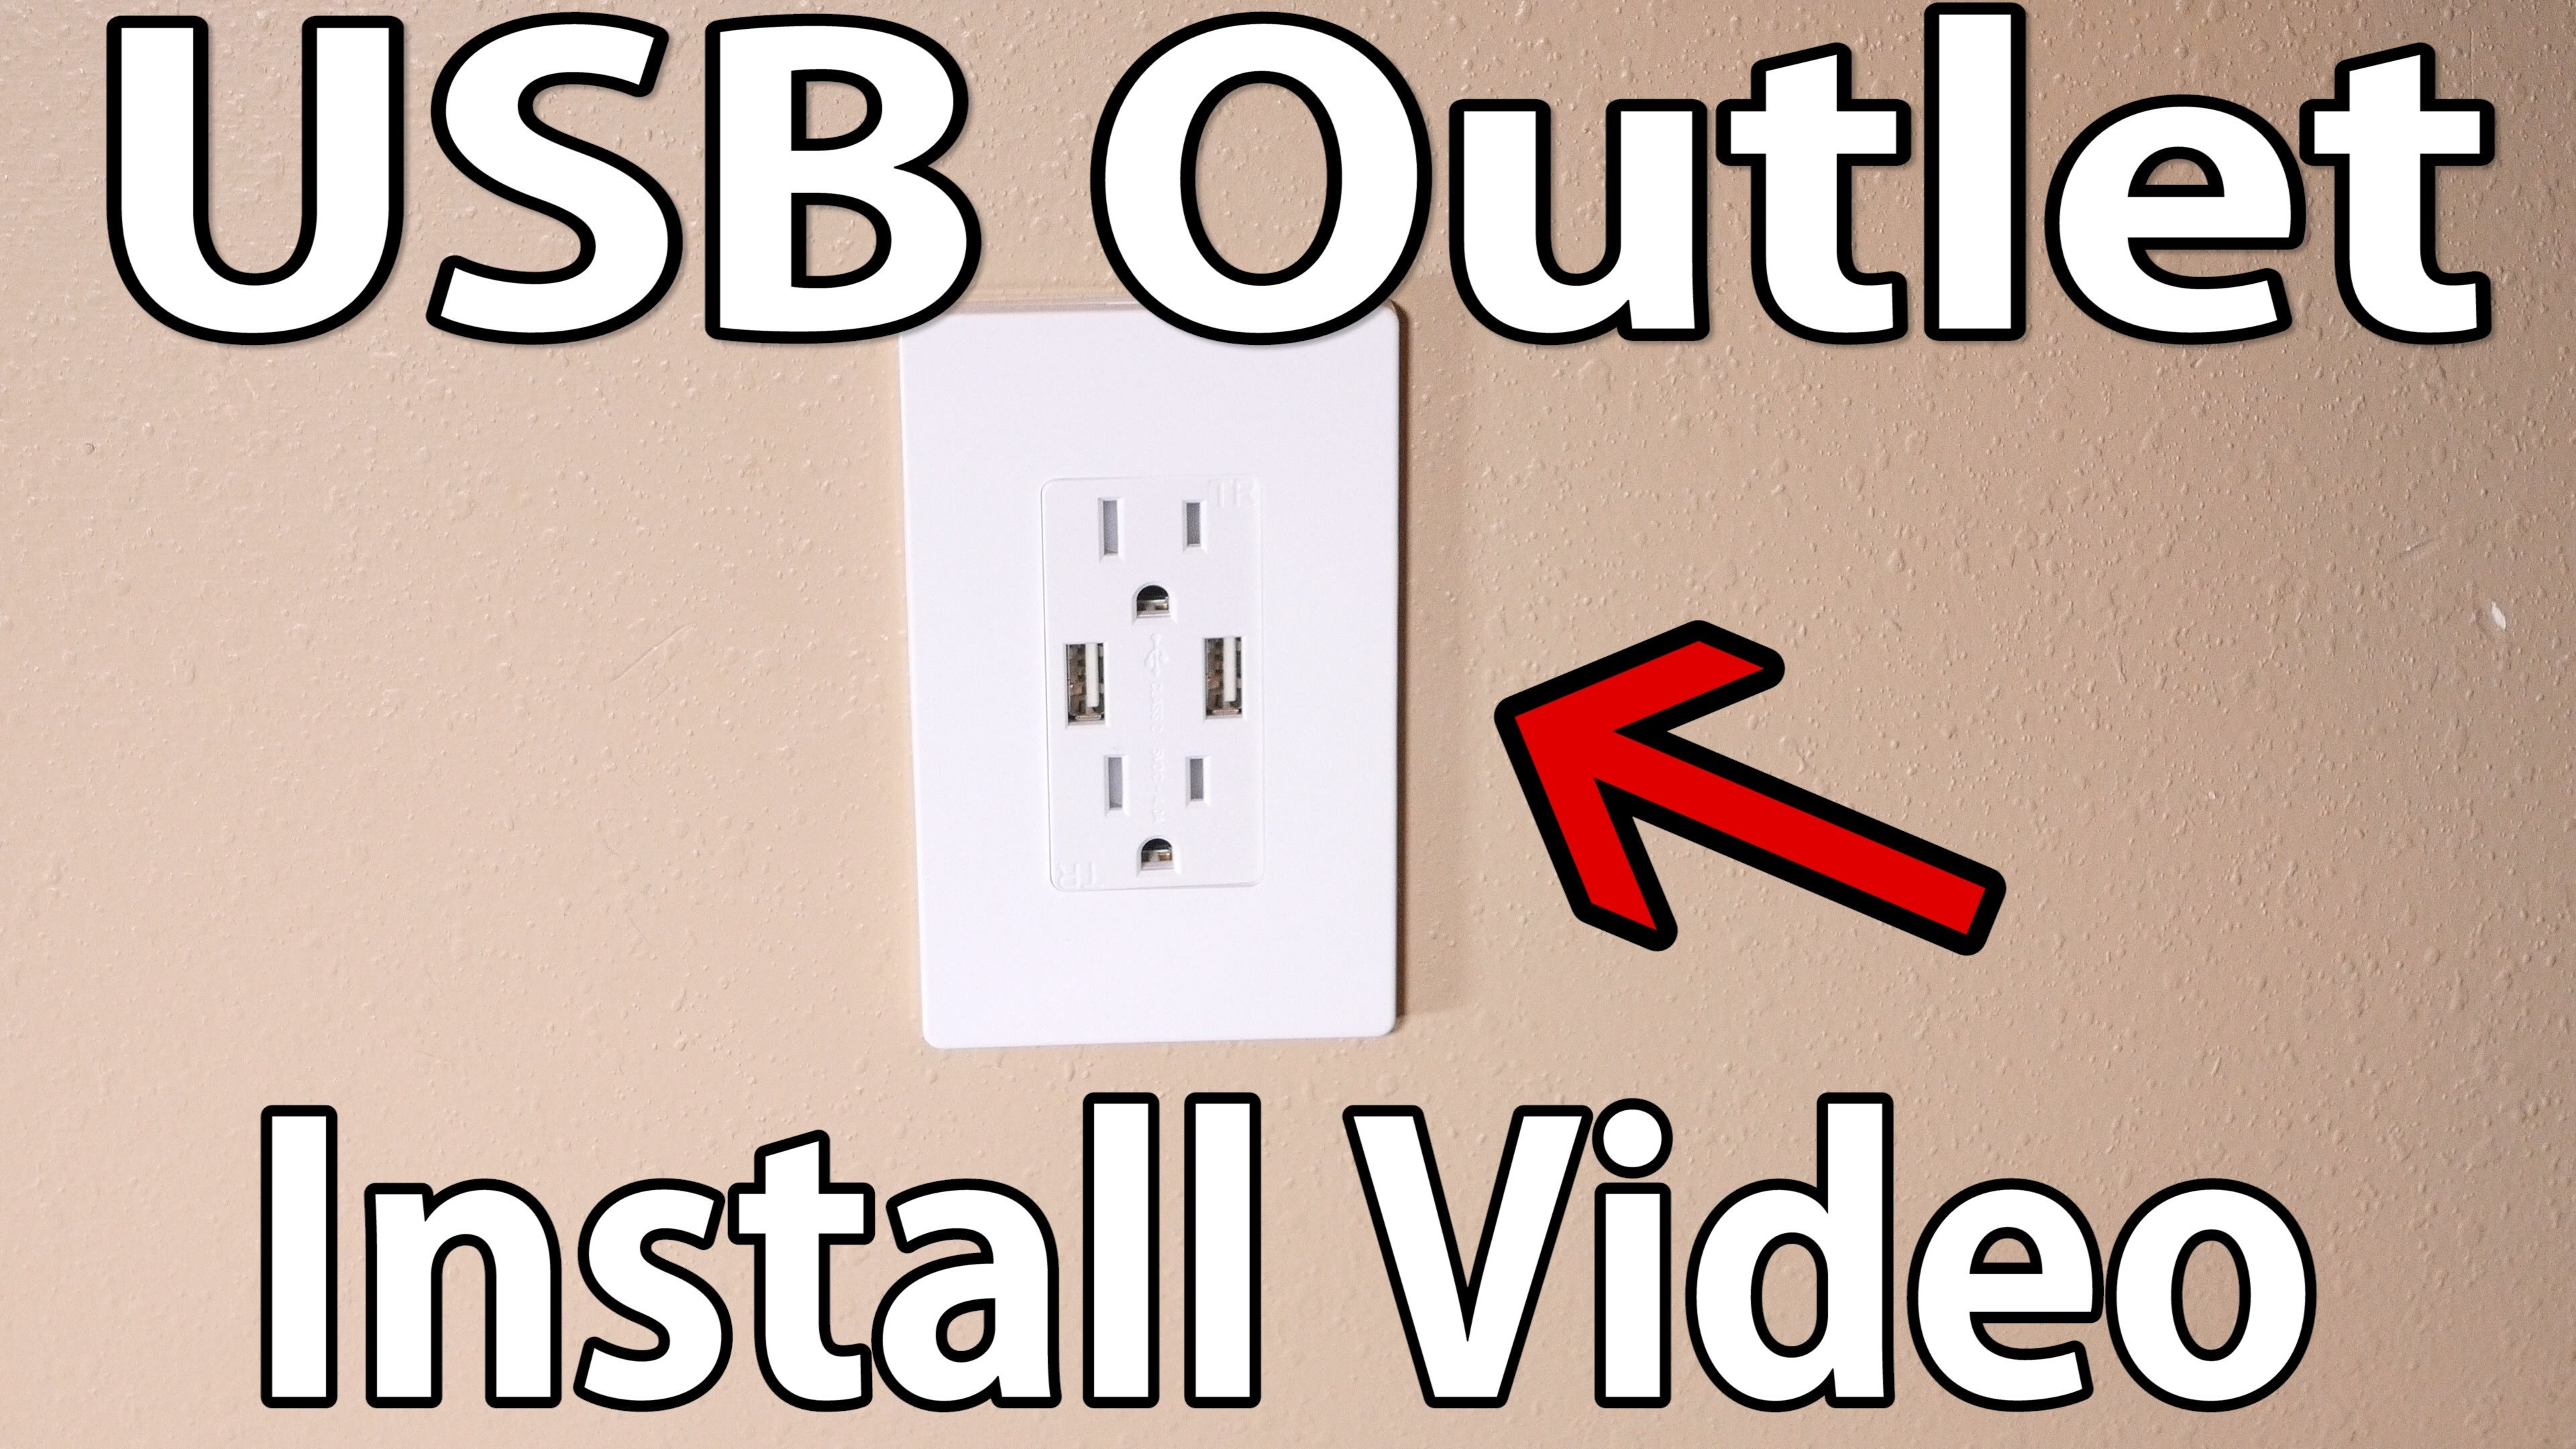 How to install USB wall outlet